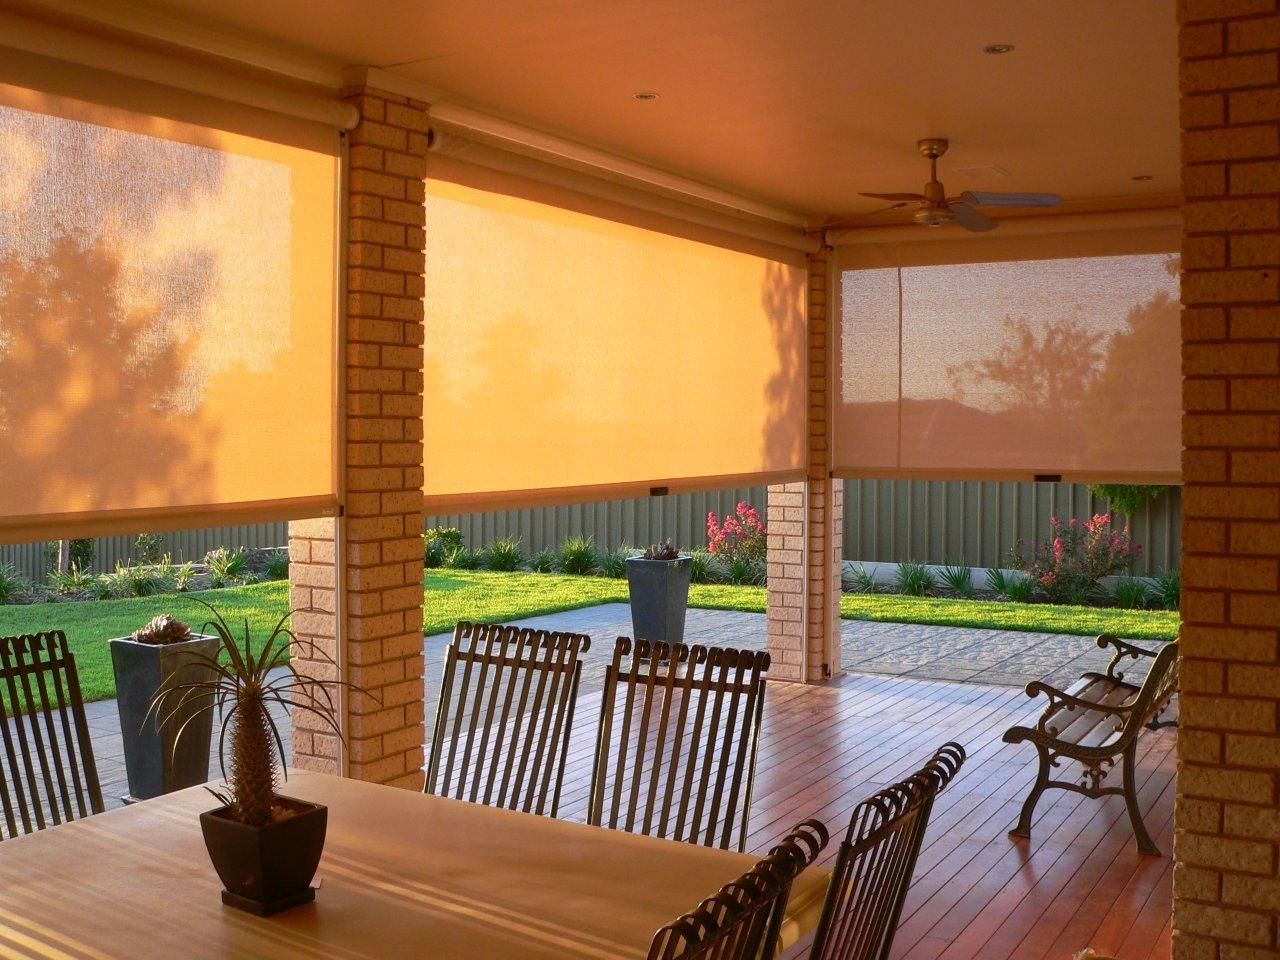 Outdoor Blinds Perth Wa With Images Cafe Blinds Outdoor